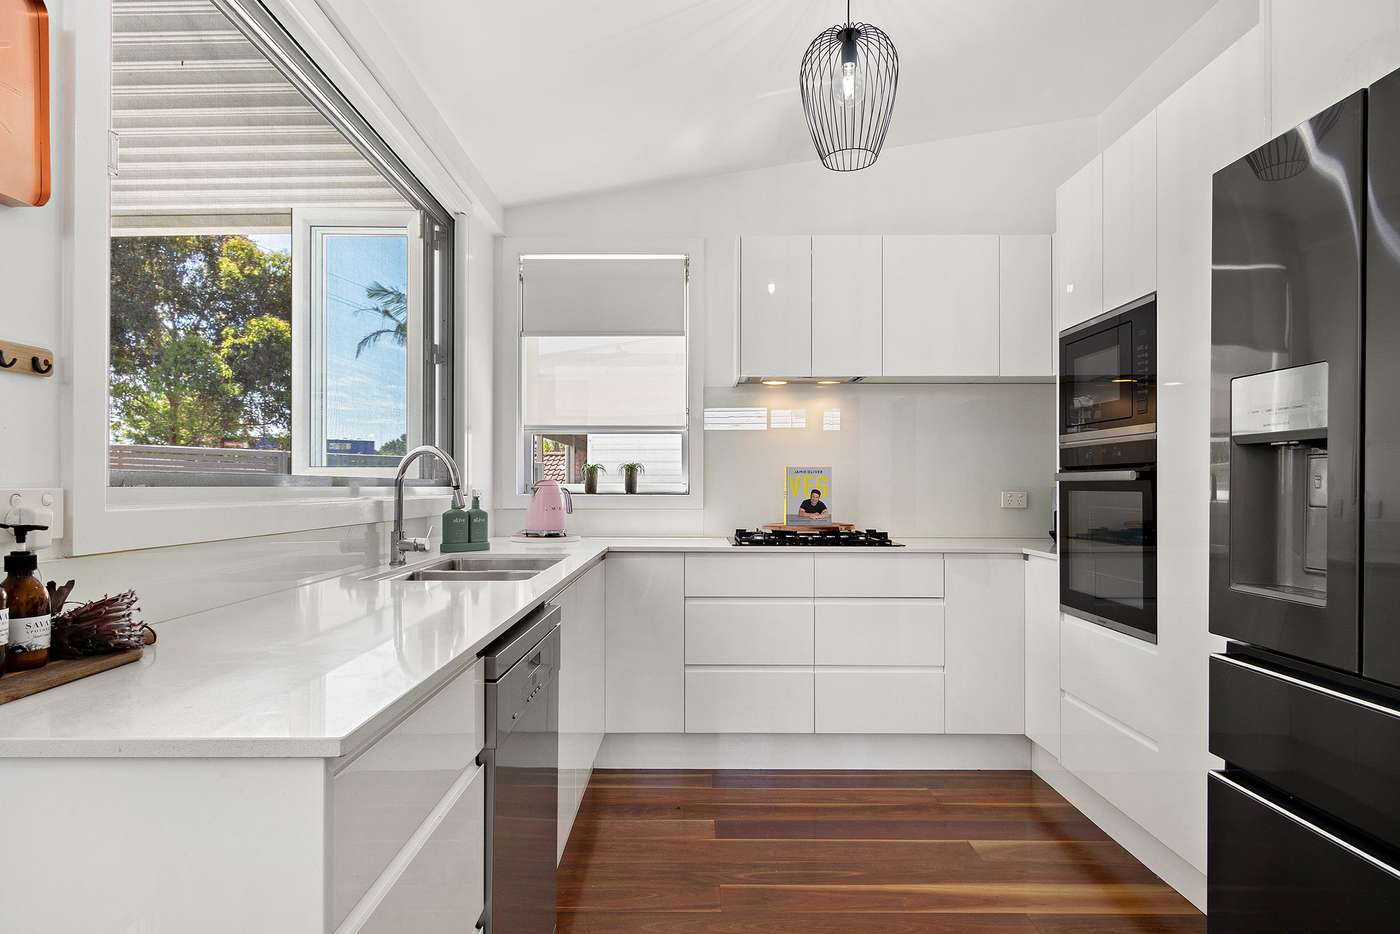 Fifth view of Homely house listing, 8 Bailey Street, Adamstown NSW 2289